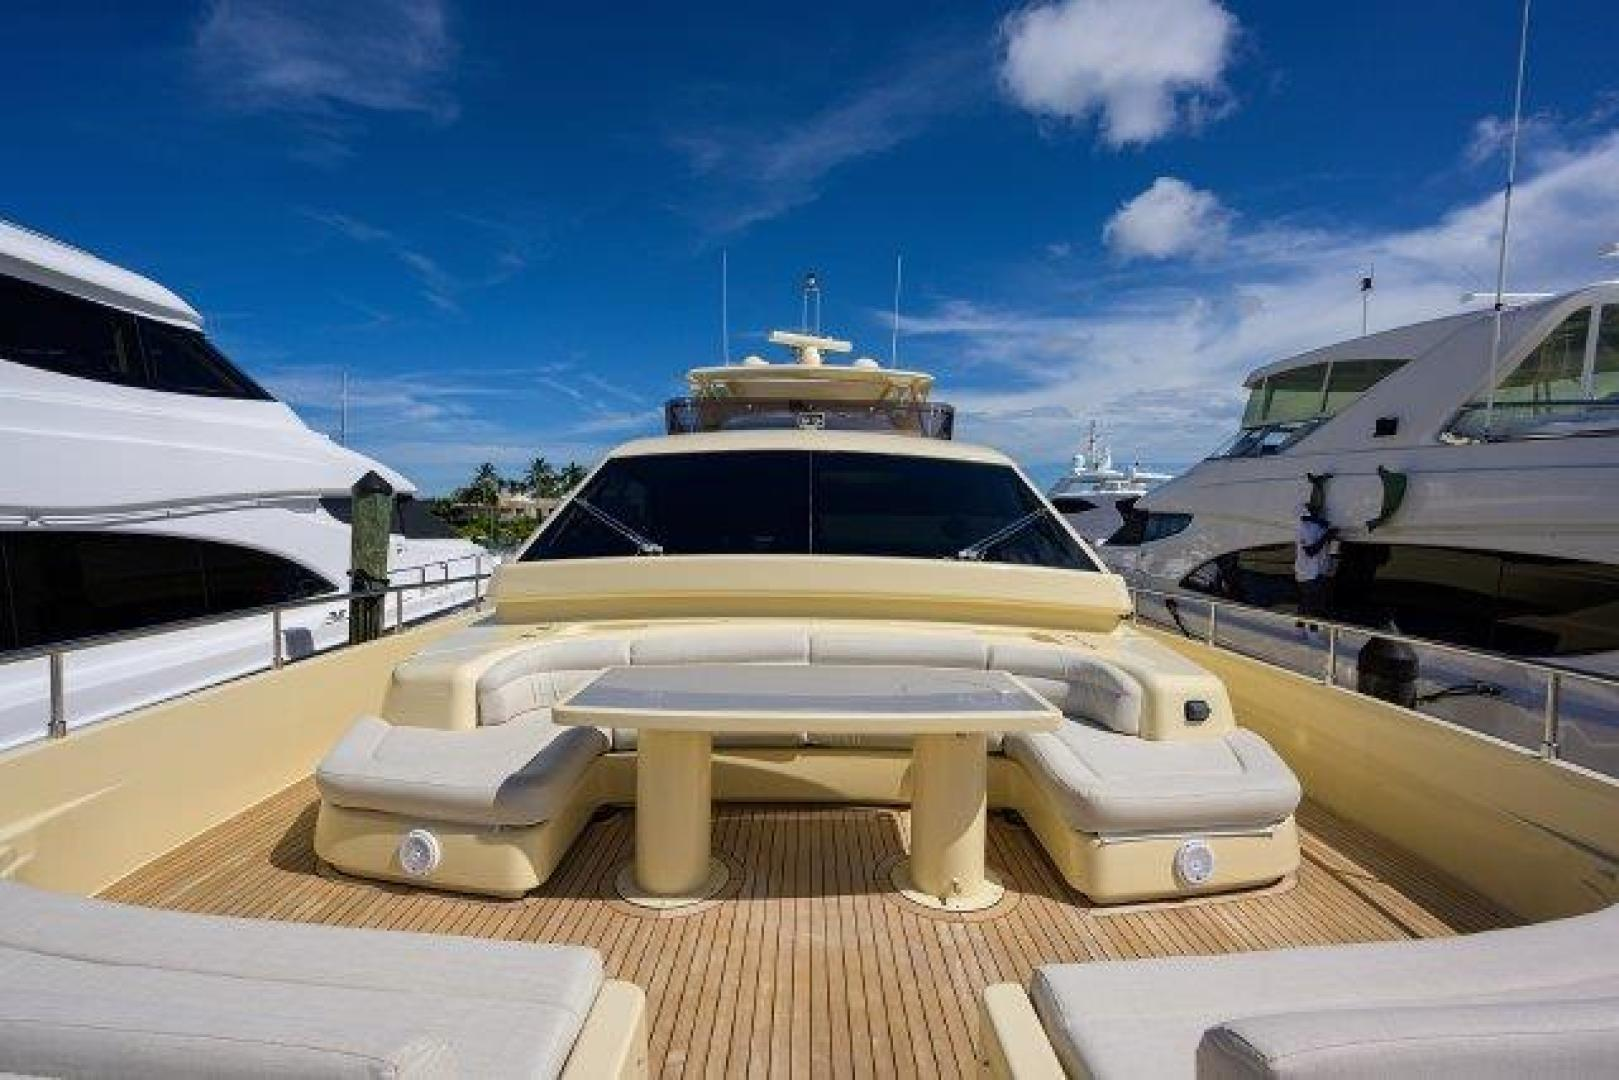 Ferretti Yachts-Altura 840 2010-MISS ALLIED Jupiter-Florida-United States-Bow -1518361 | Thumbnail